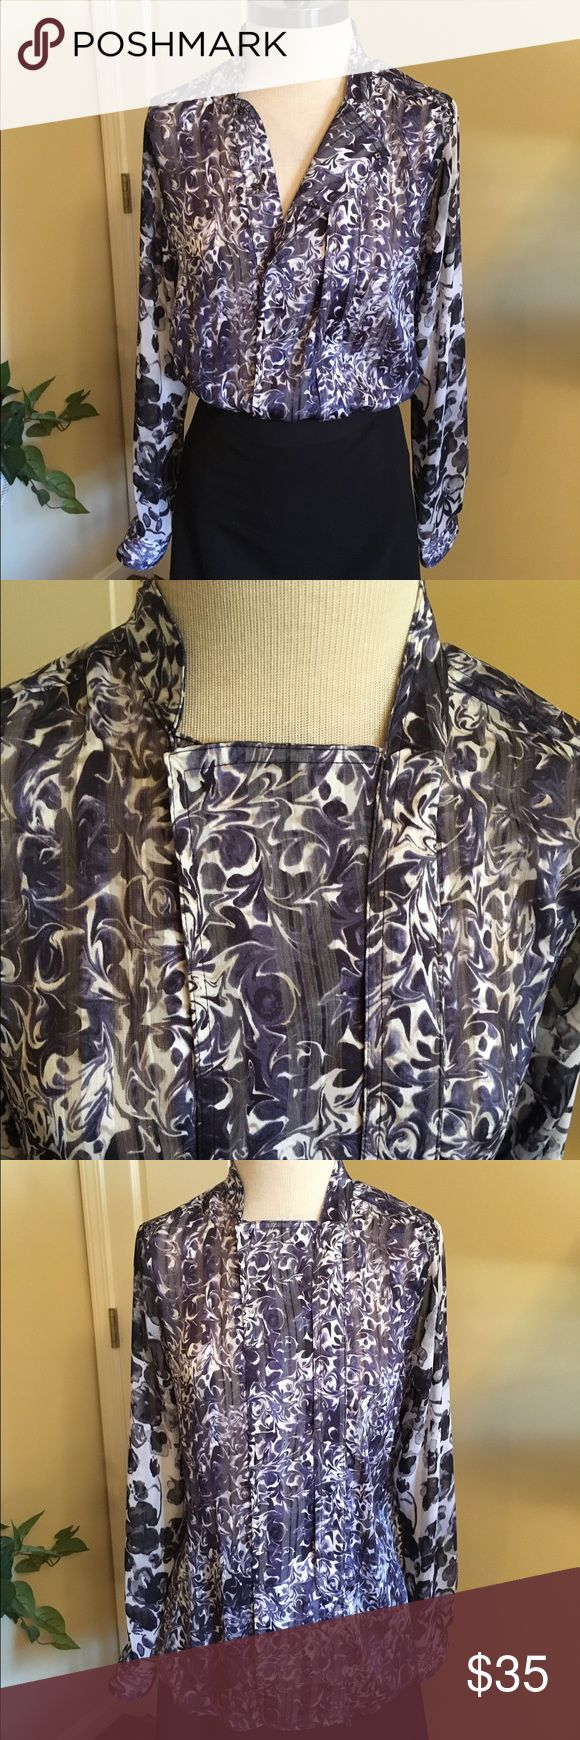 Vera Wang Floral Blouse Beautiful purple Blouse by Vera Wang. Size medium. Semi sheer but doesn't need camisole. Unique asymmetrical snap closure with pleated detail. Longs sleeves with coordinated fabric. Vera Wang Tops Blouses